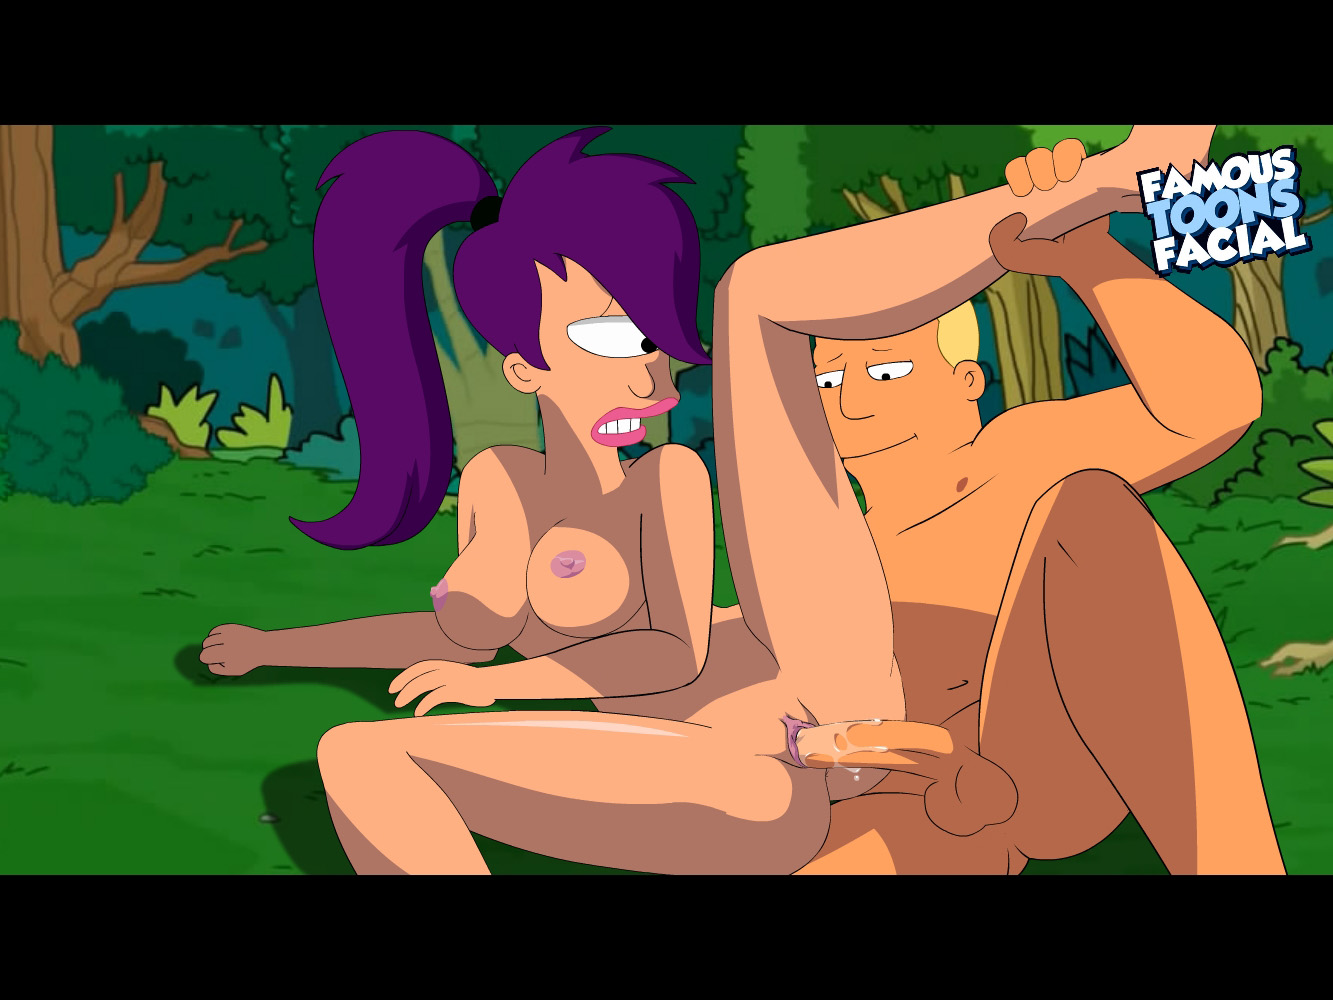 Toon nudes porn are videos toons leela turanga lover making. toon nudes ima